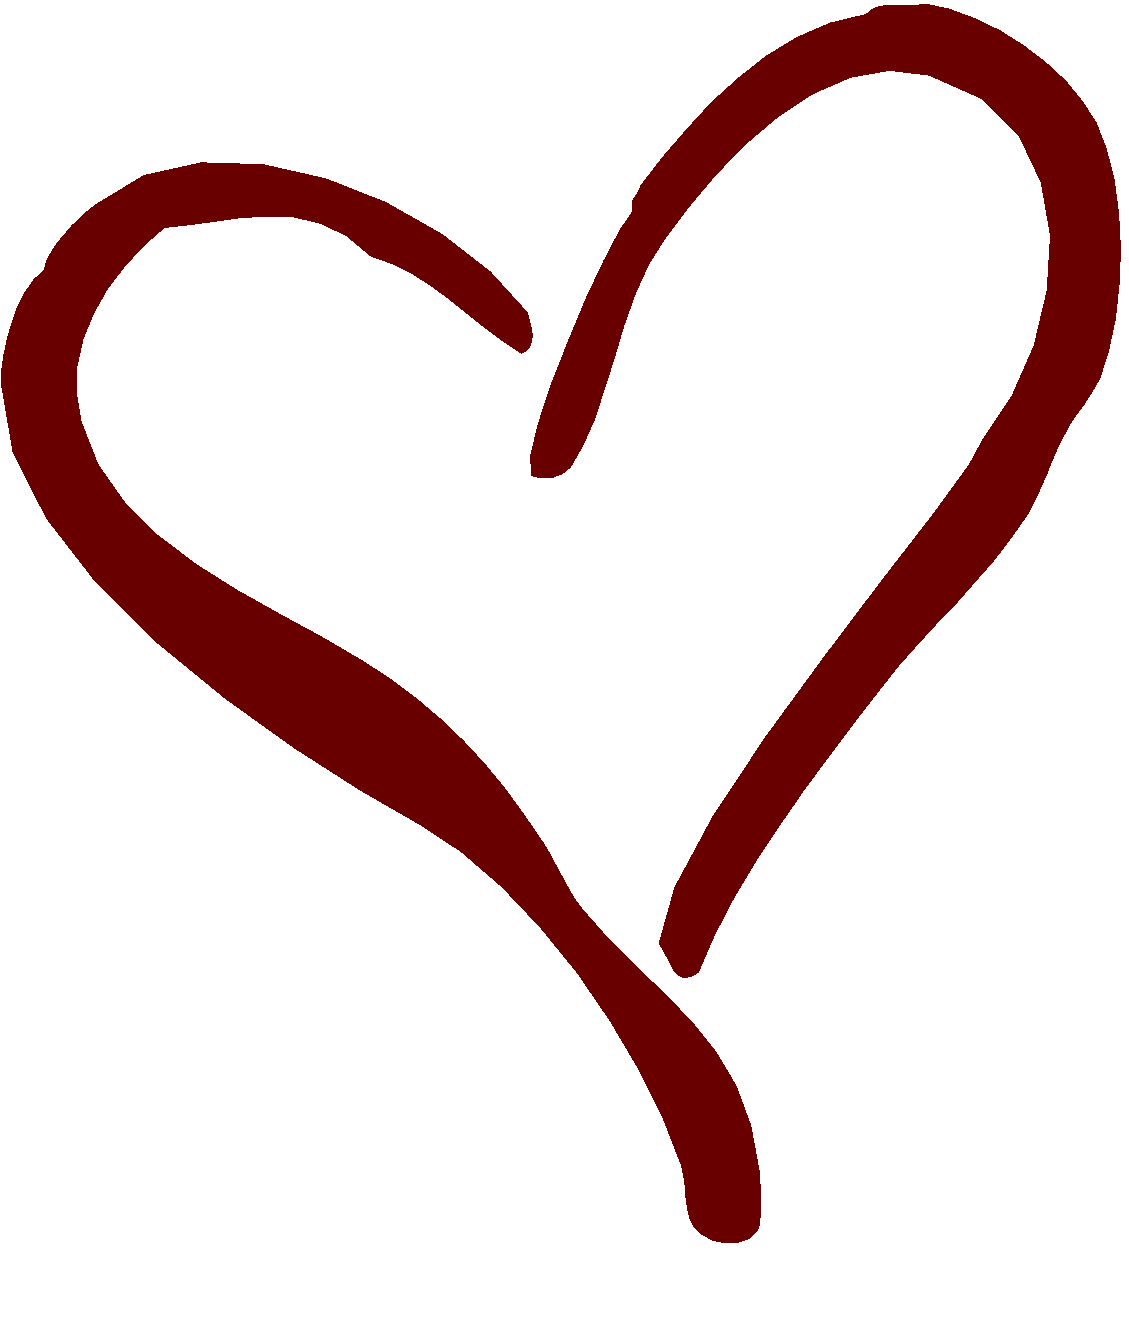 Outline of a heart free download best outline of a heart on 1129x1342 free clipart heart outline decorating 2 buycottarizona Image collections